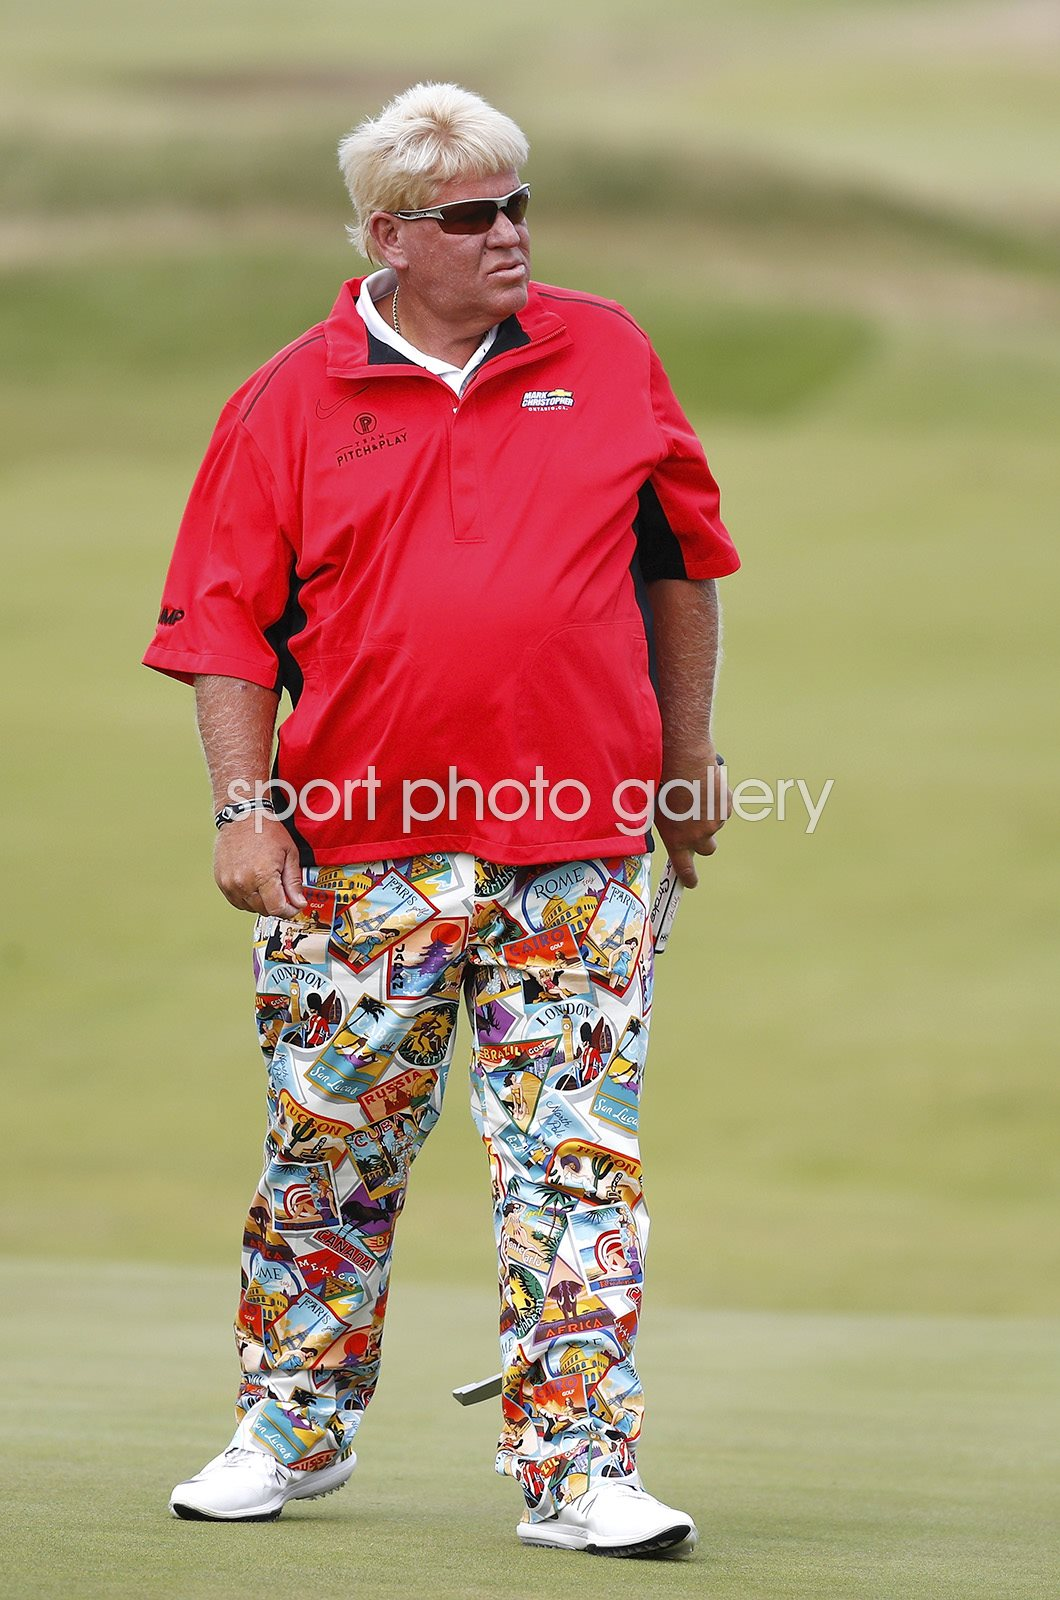 John Daly USA British Open Royal Birkdale 2017